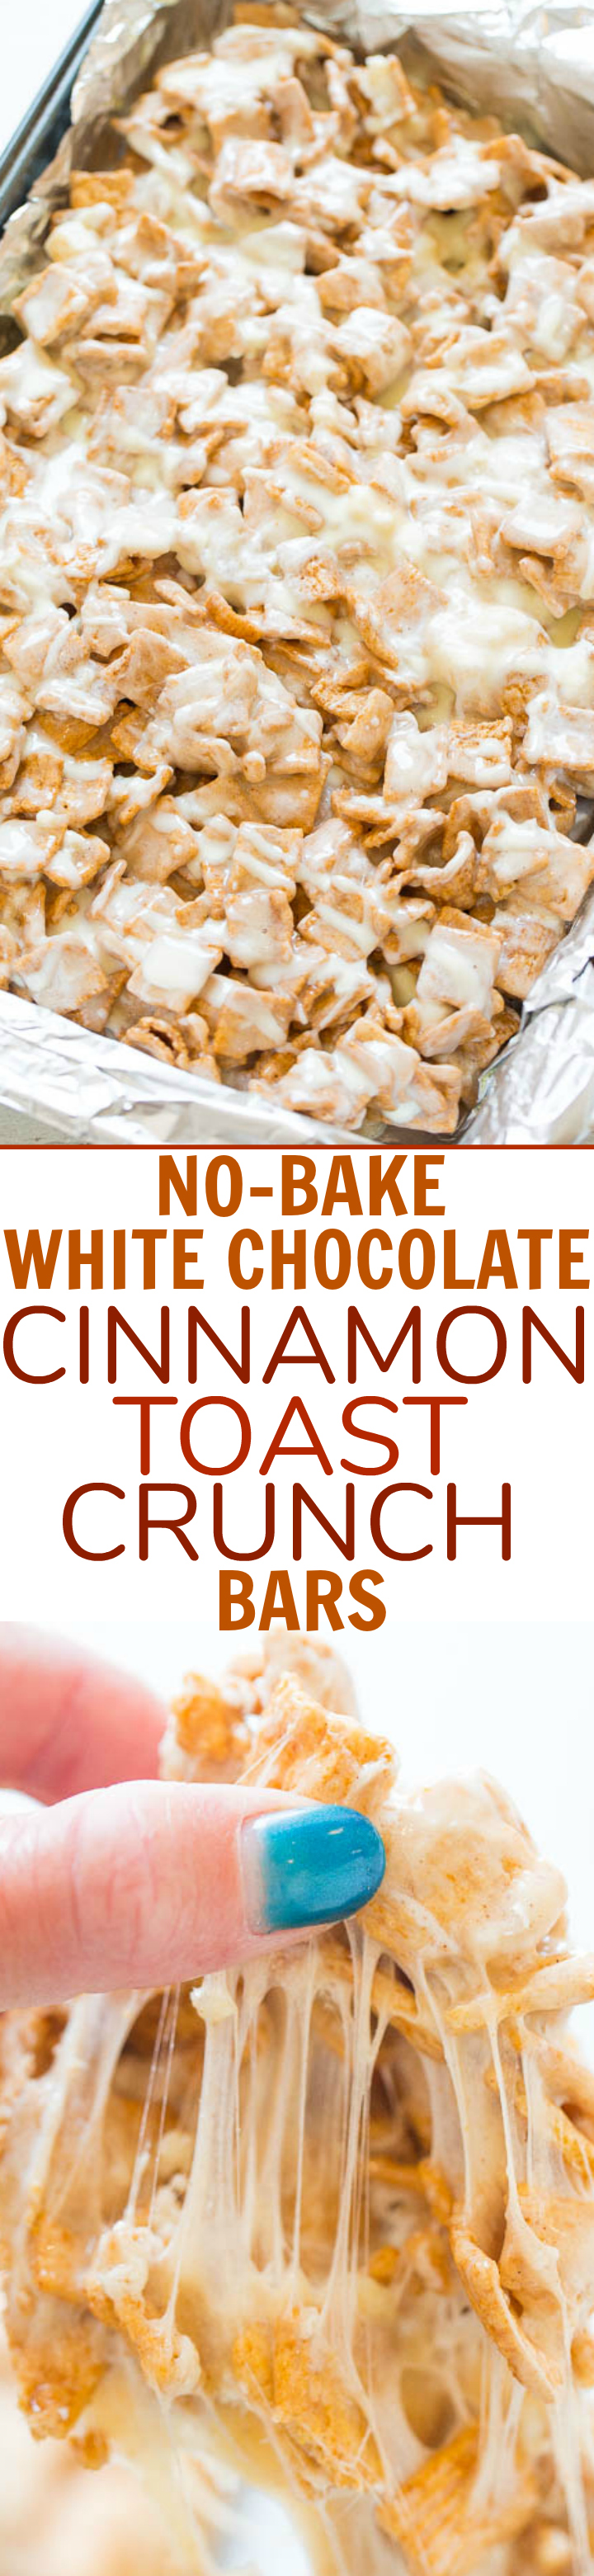 No-Bake White Chocolate Cinnamon Toast Crunch Bars #cinnamontoastcrunch